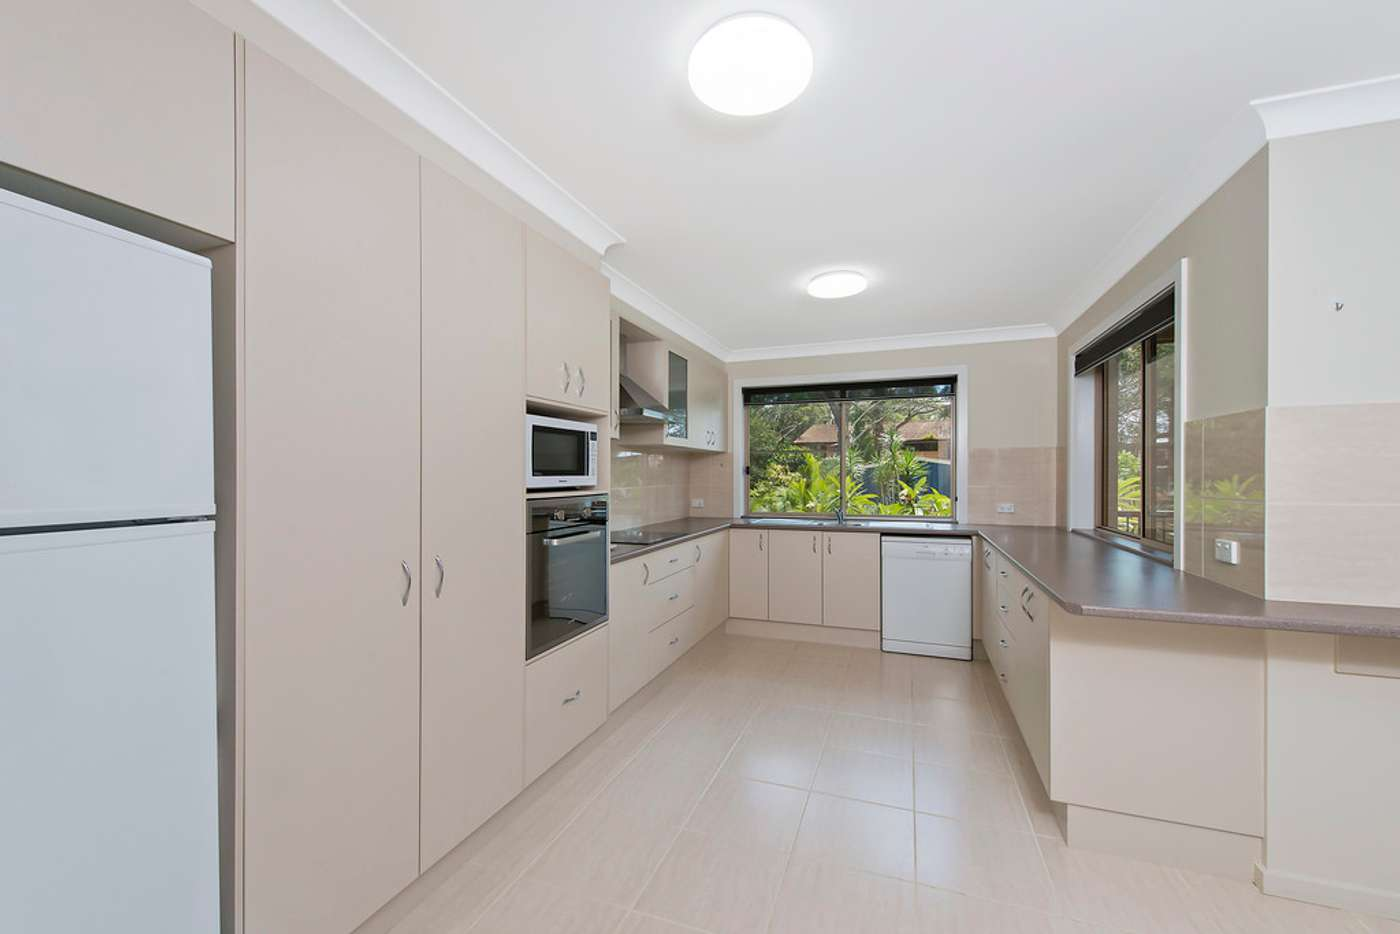 Fifth view of Homely house listing, 4 James Atkins Close, Dunbogan NSW 2443